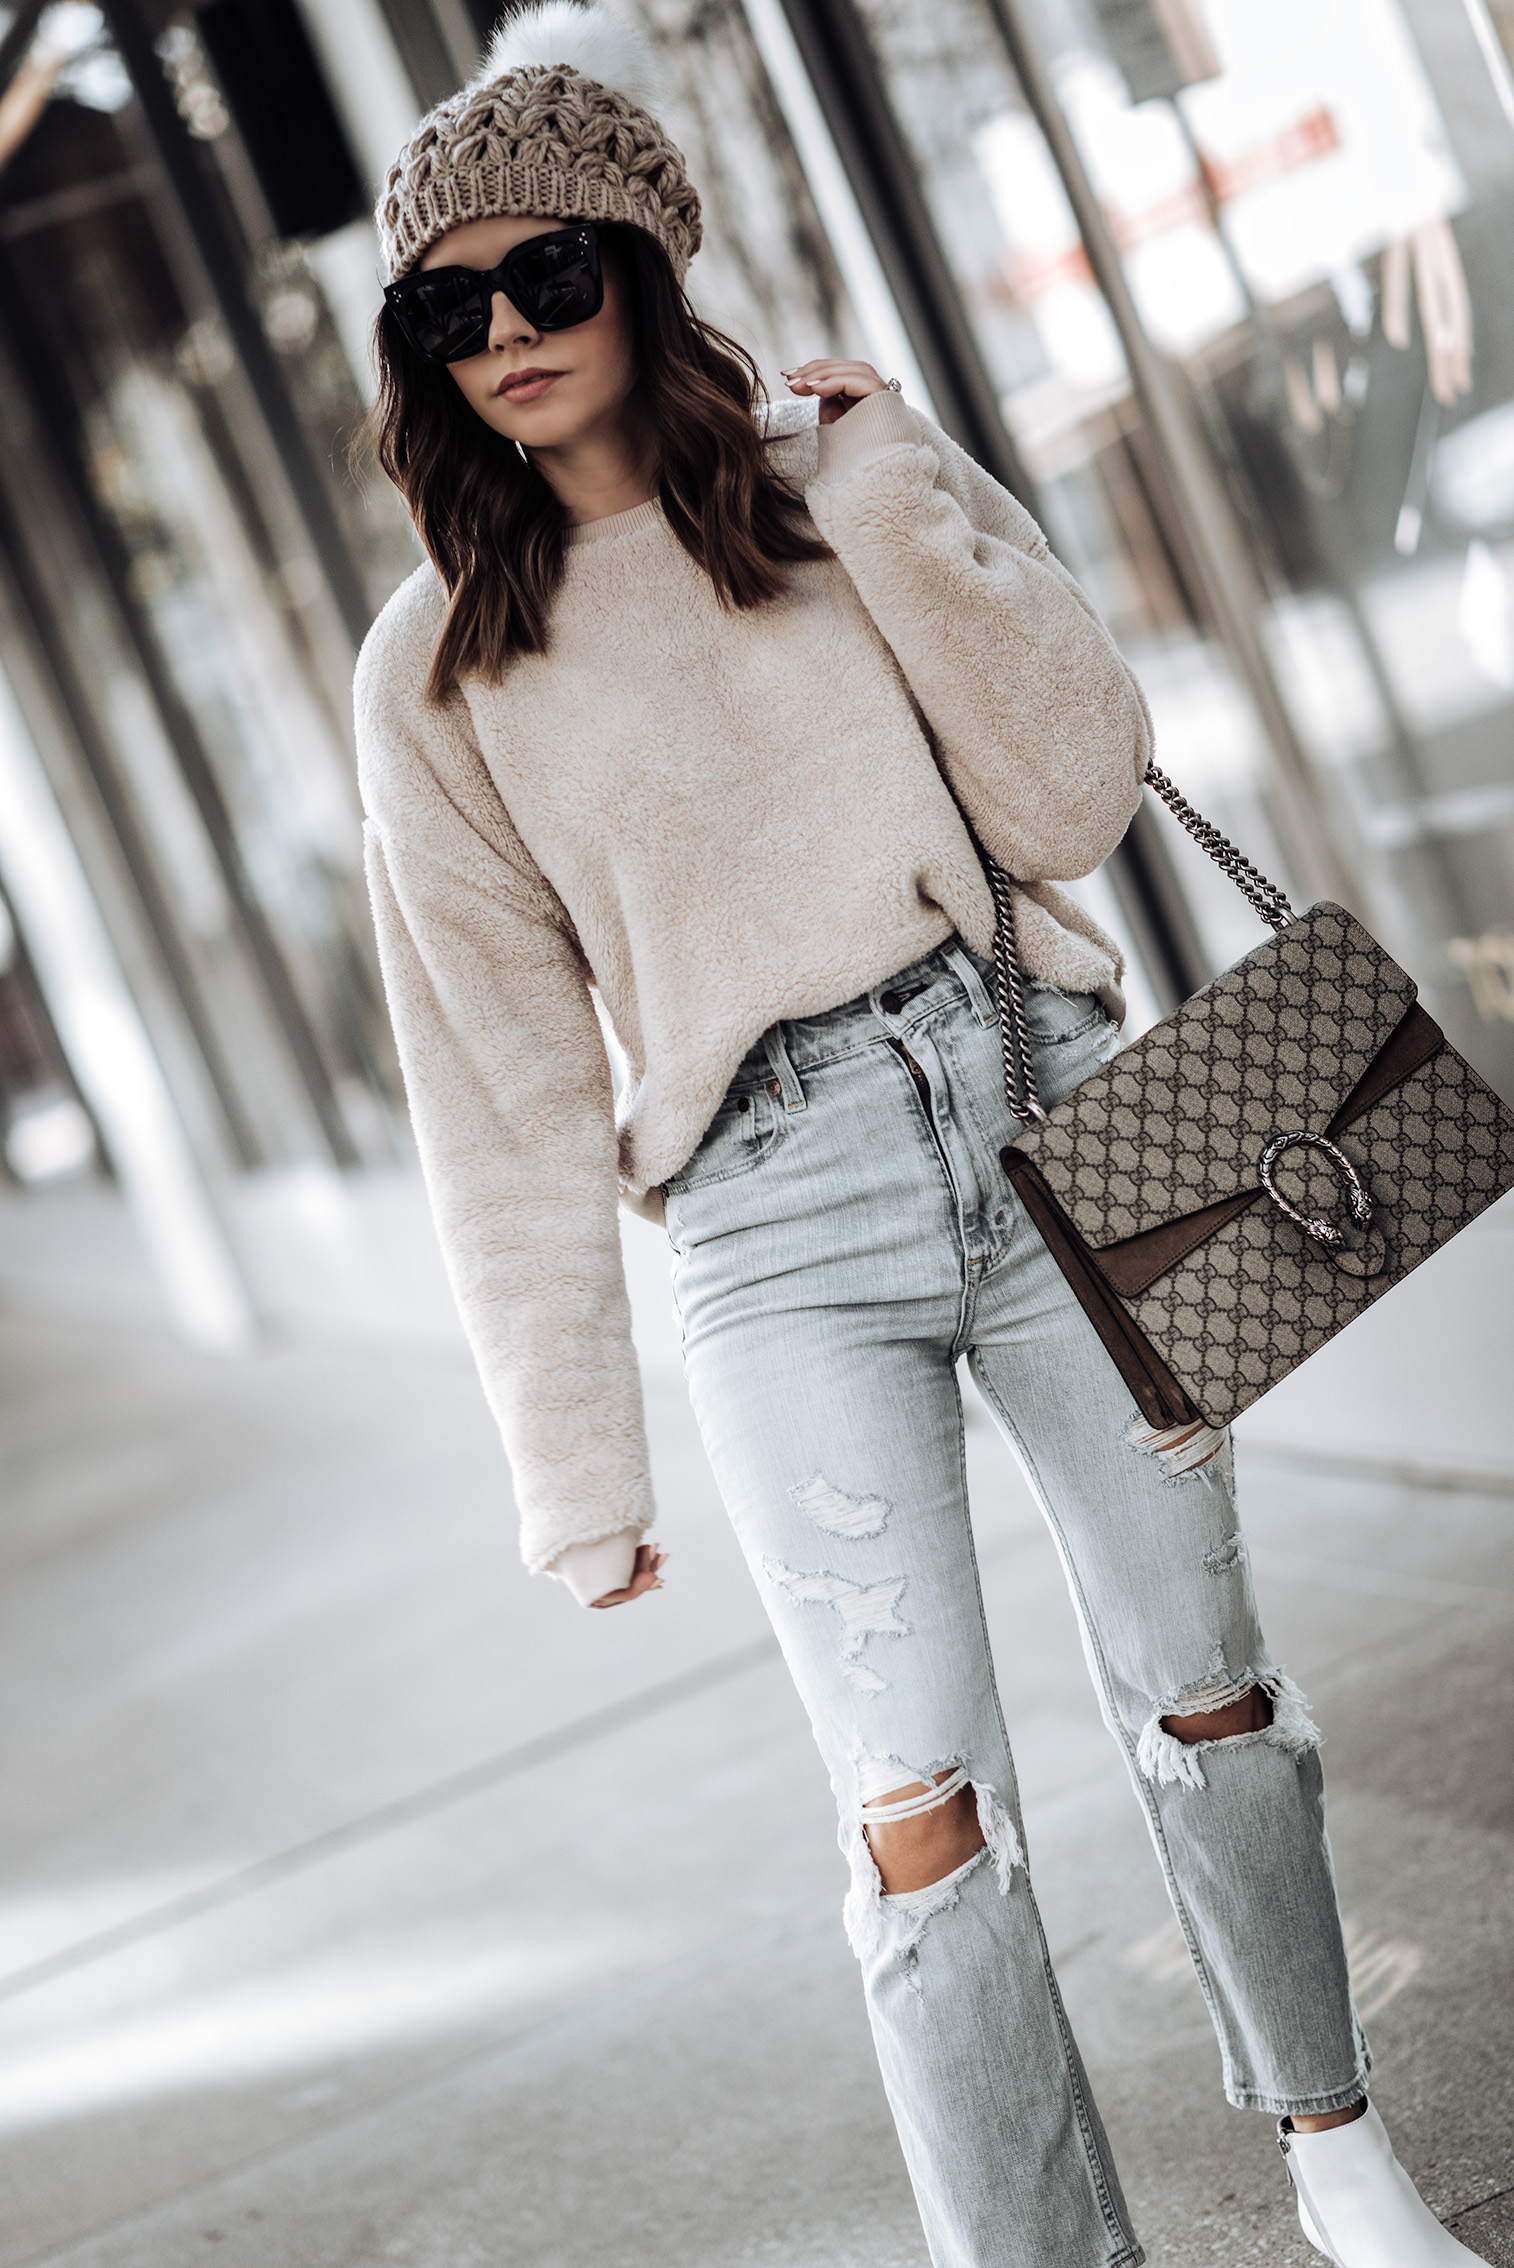 Fuzzy crewneck Sweatshirt | High Rise Ankle Strait Jeans | Kinzey Ankle Boots | Beanie (similar) | Large Gucci Dionysus Bag | Celine Glasses | #falloutfits #beanieoutfits #guccibagoutfits #casualoutfitideas Cozy outfits